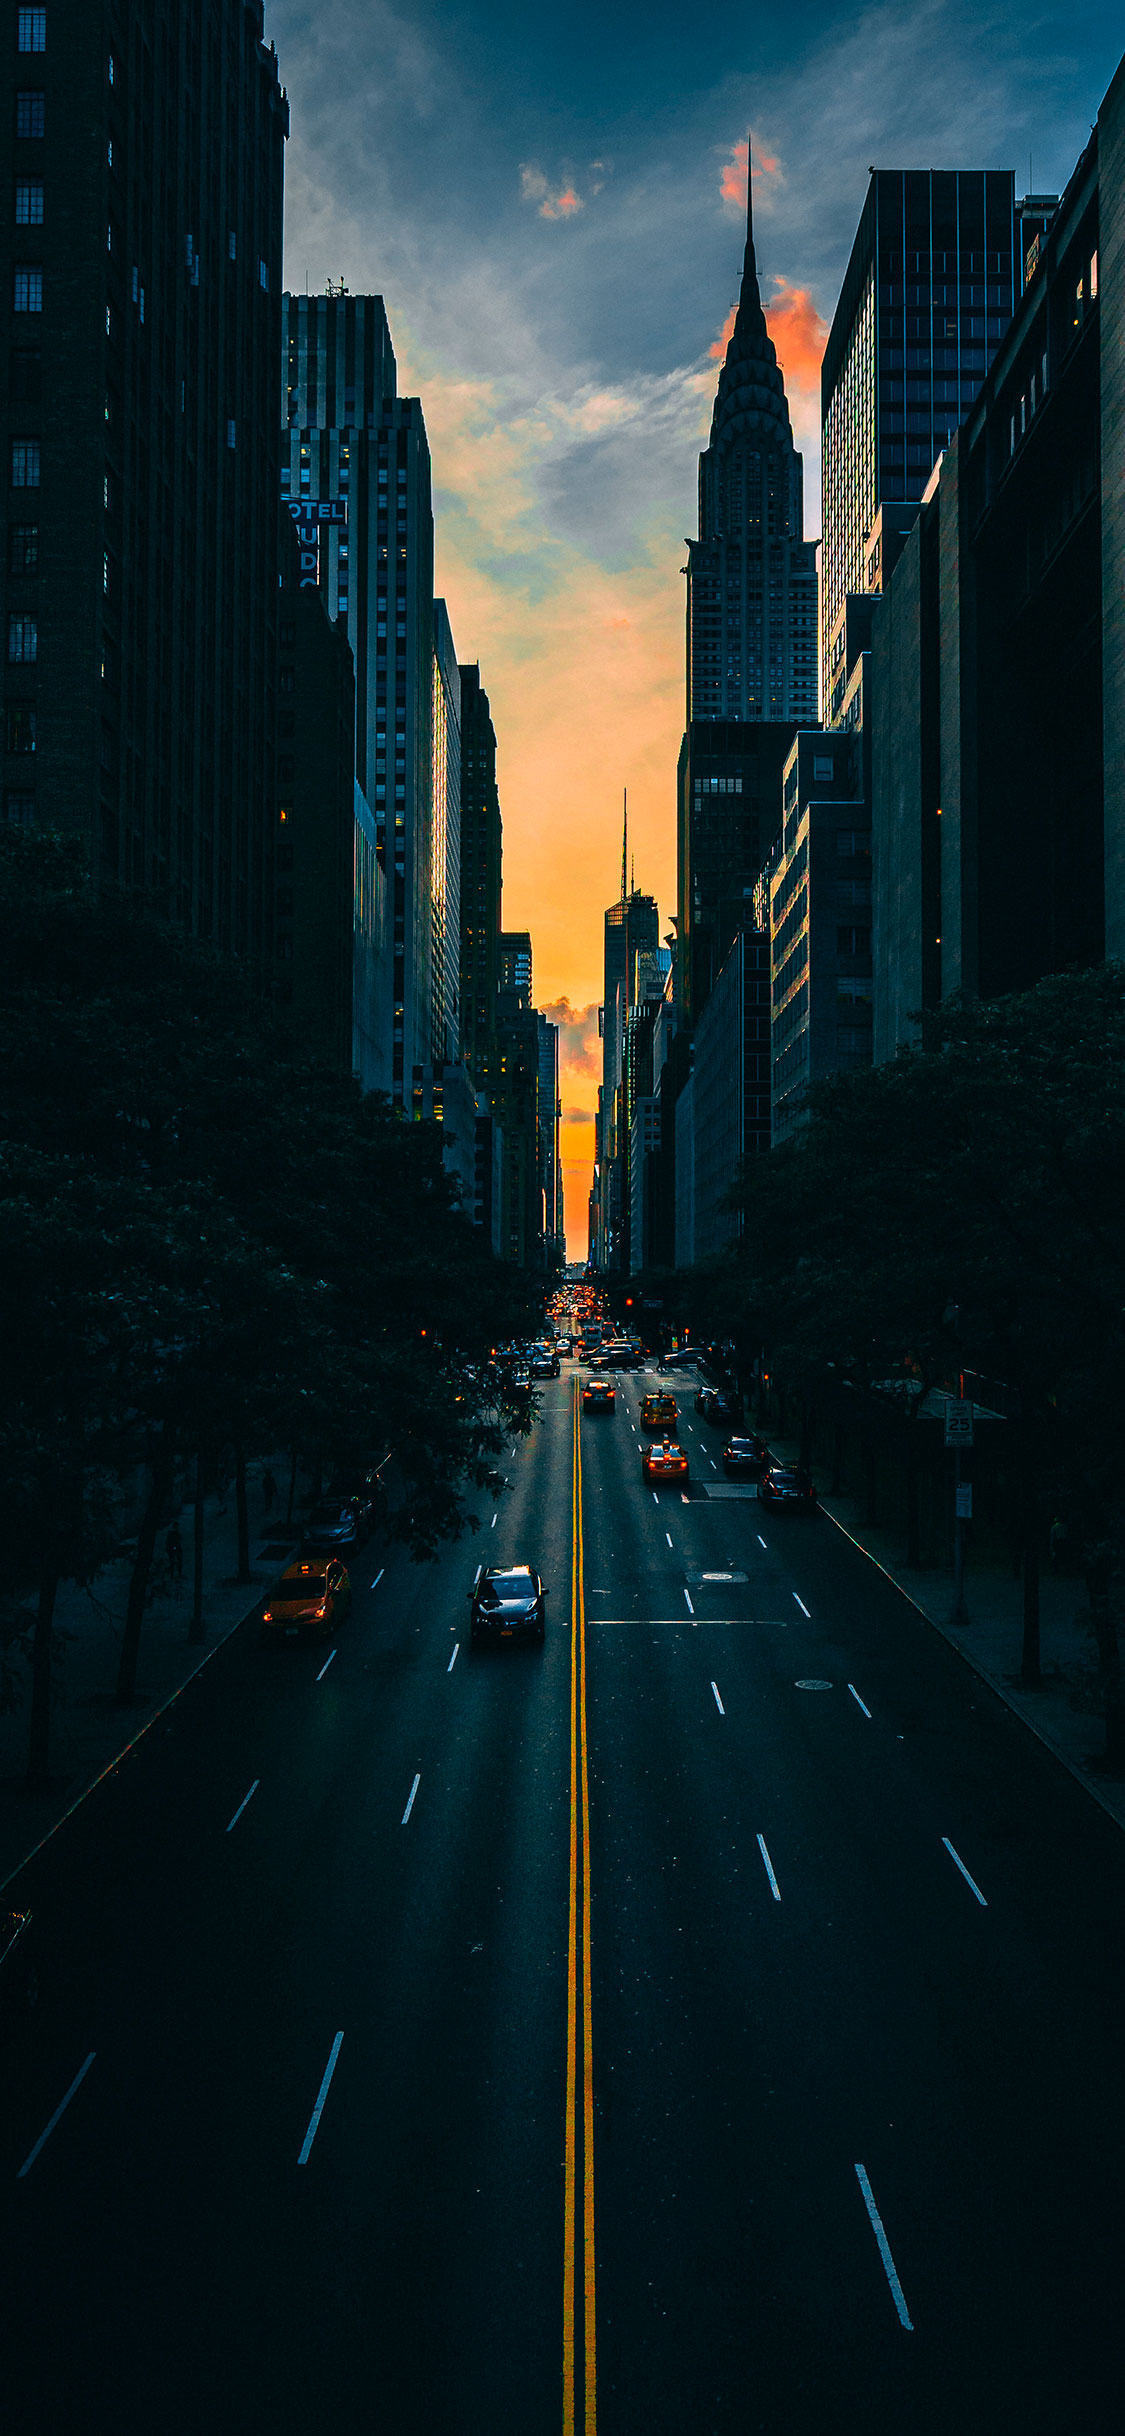 New York Wallpaper For Iphone 11 Pro Max X 8 7 6 Free Download On 3wallpapers